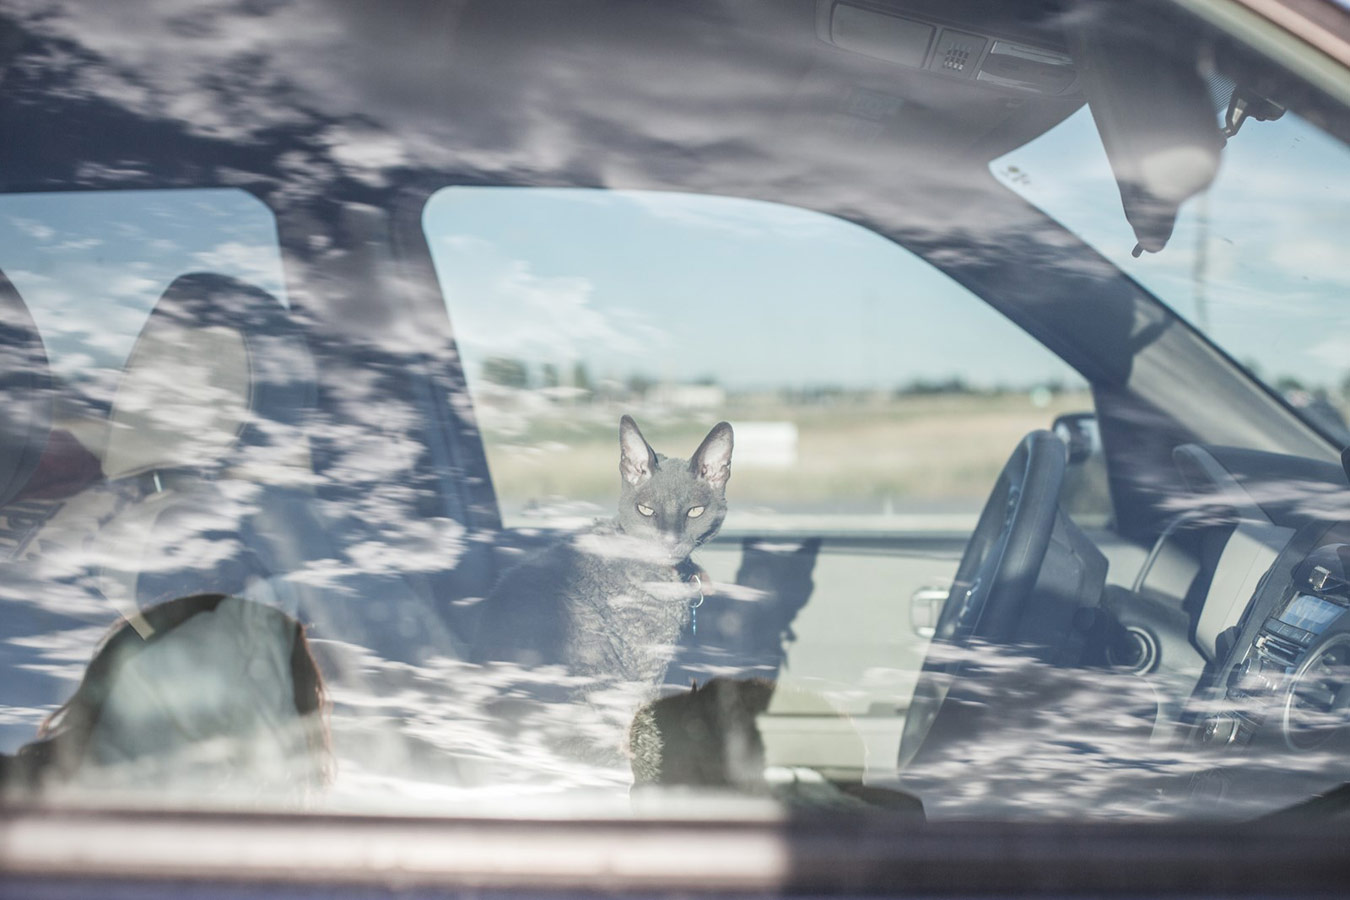 A Cat in a Car, from the series 'The Duke of Earl', © Christopher Bethell (UK), Under 30s Gold Award, RPS International Photography Exhibition (IPE)